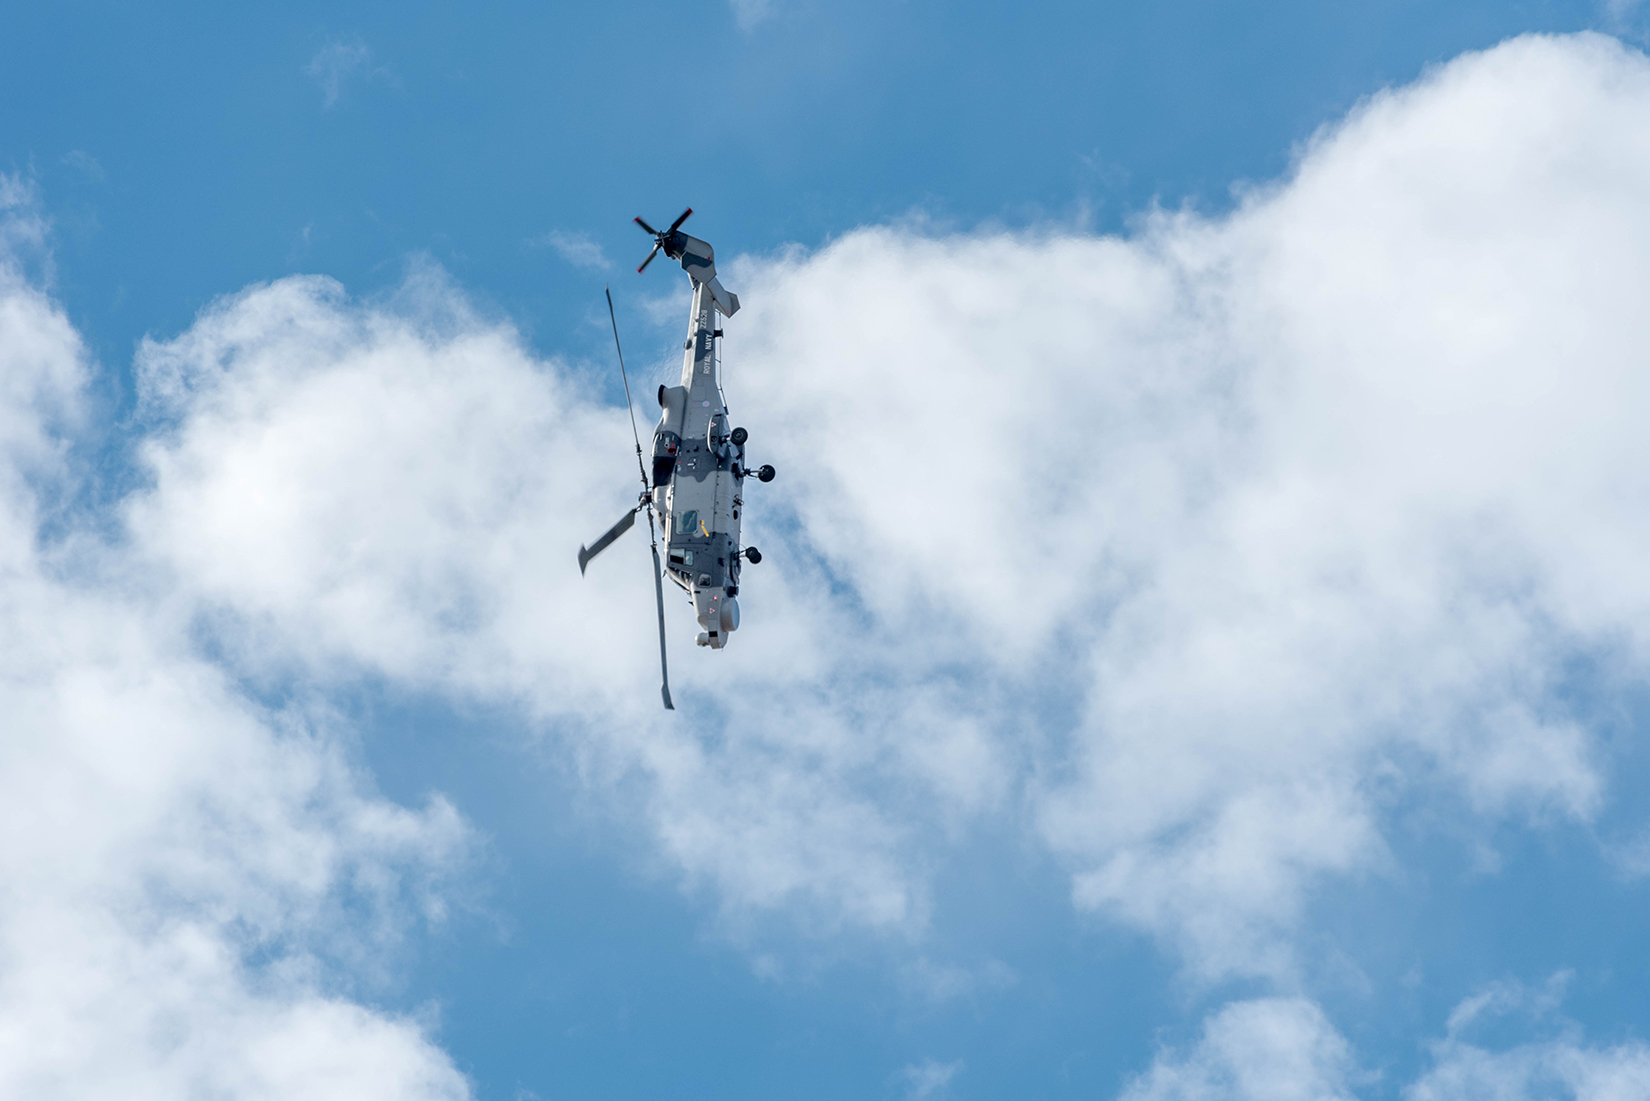 Royal Navy's Black Cats display team